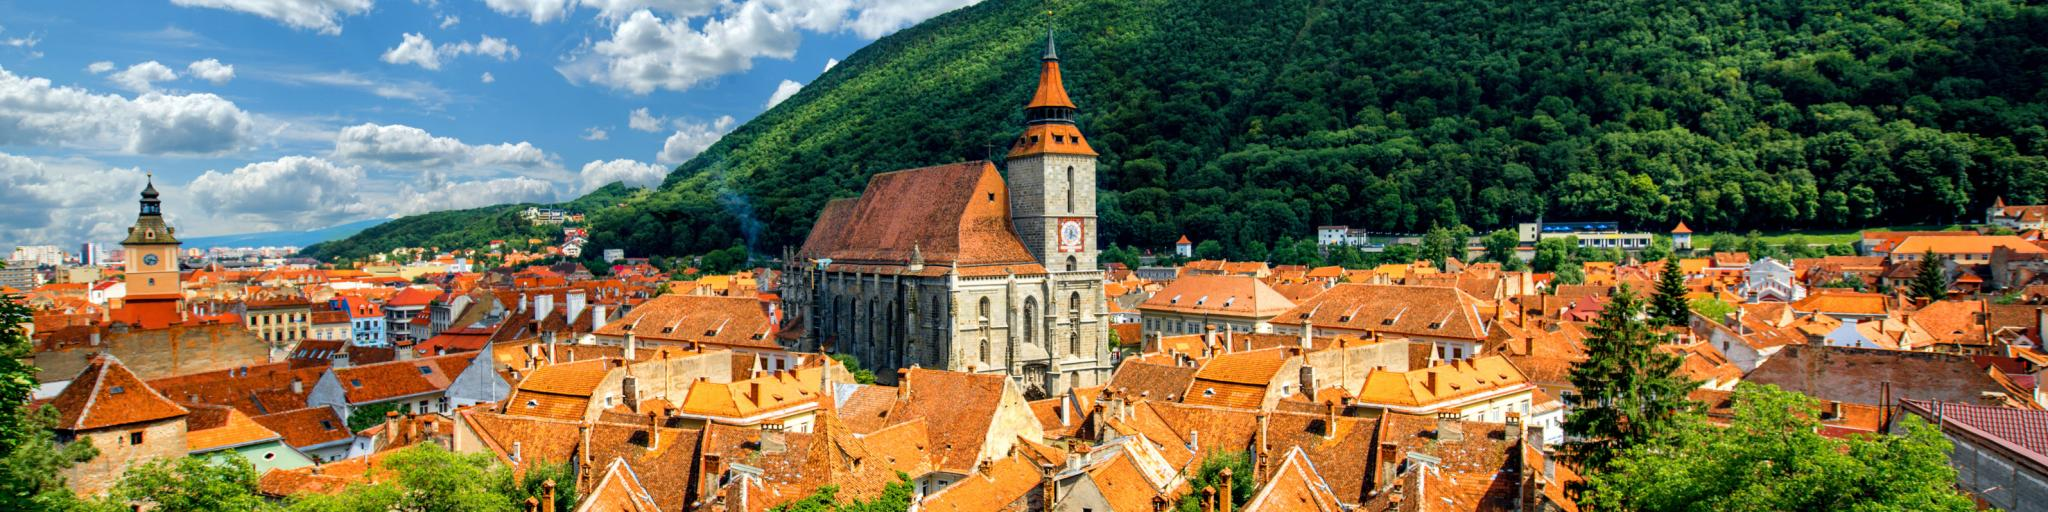 Stop in Brasov on the Transylvania road trip through Romania